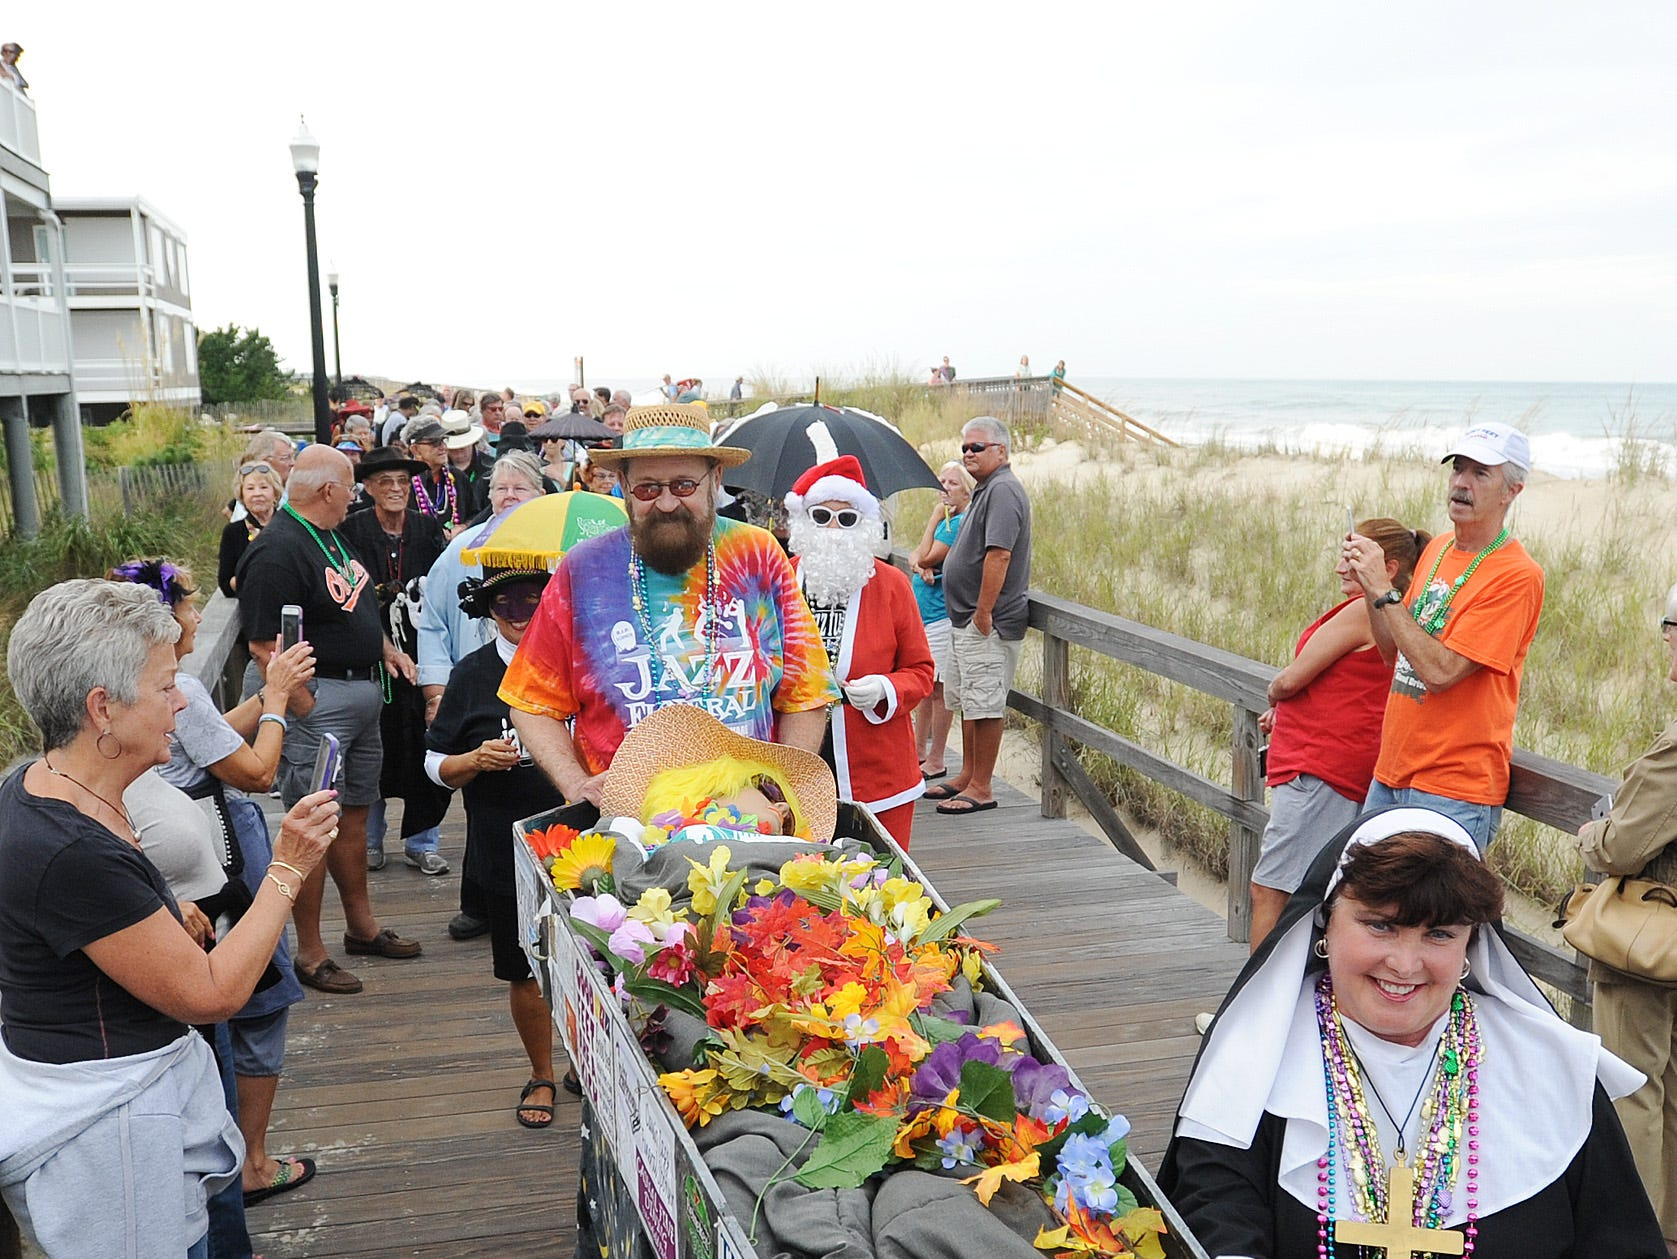 Say goodbye to summer at Bethany Beach's Jazz Funeral www.jazz-funeral.com